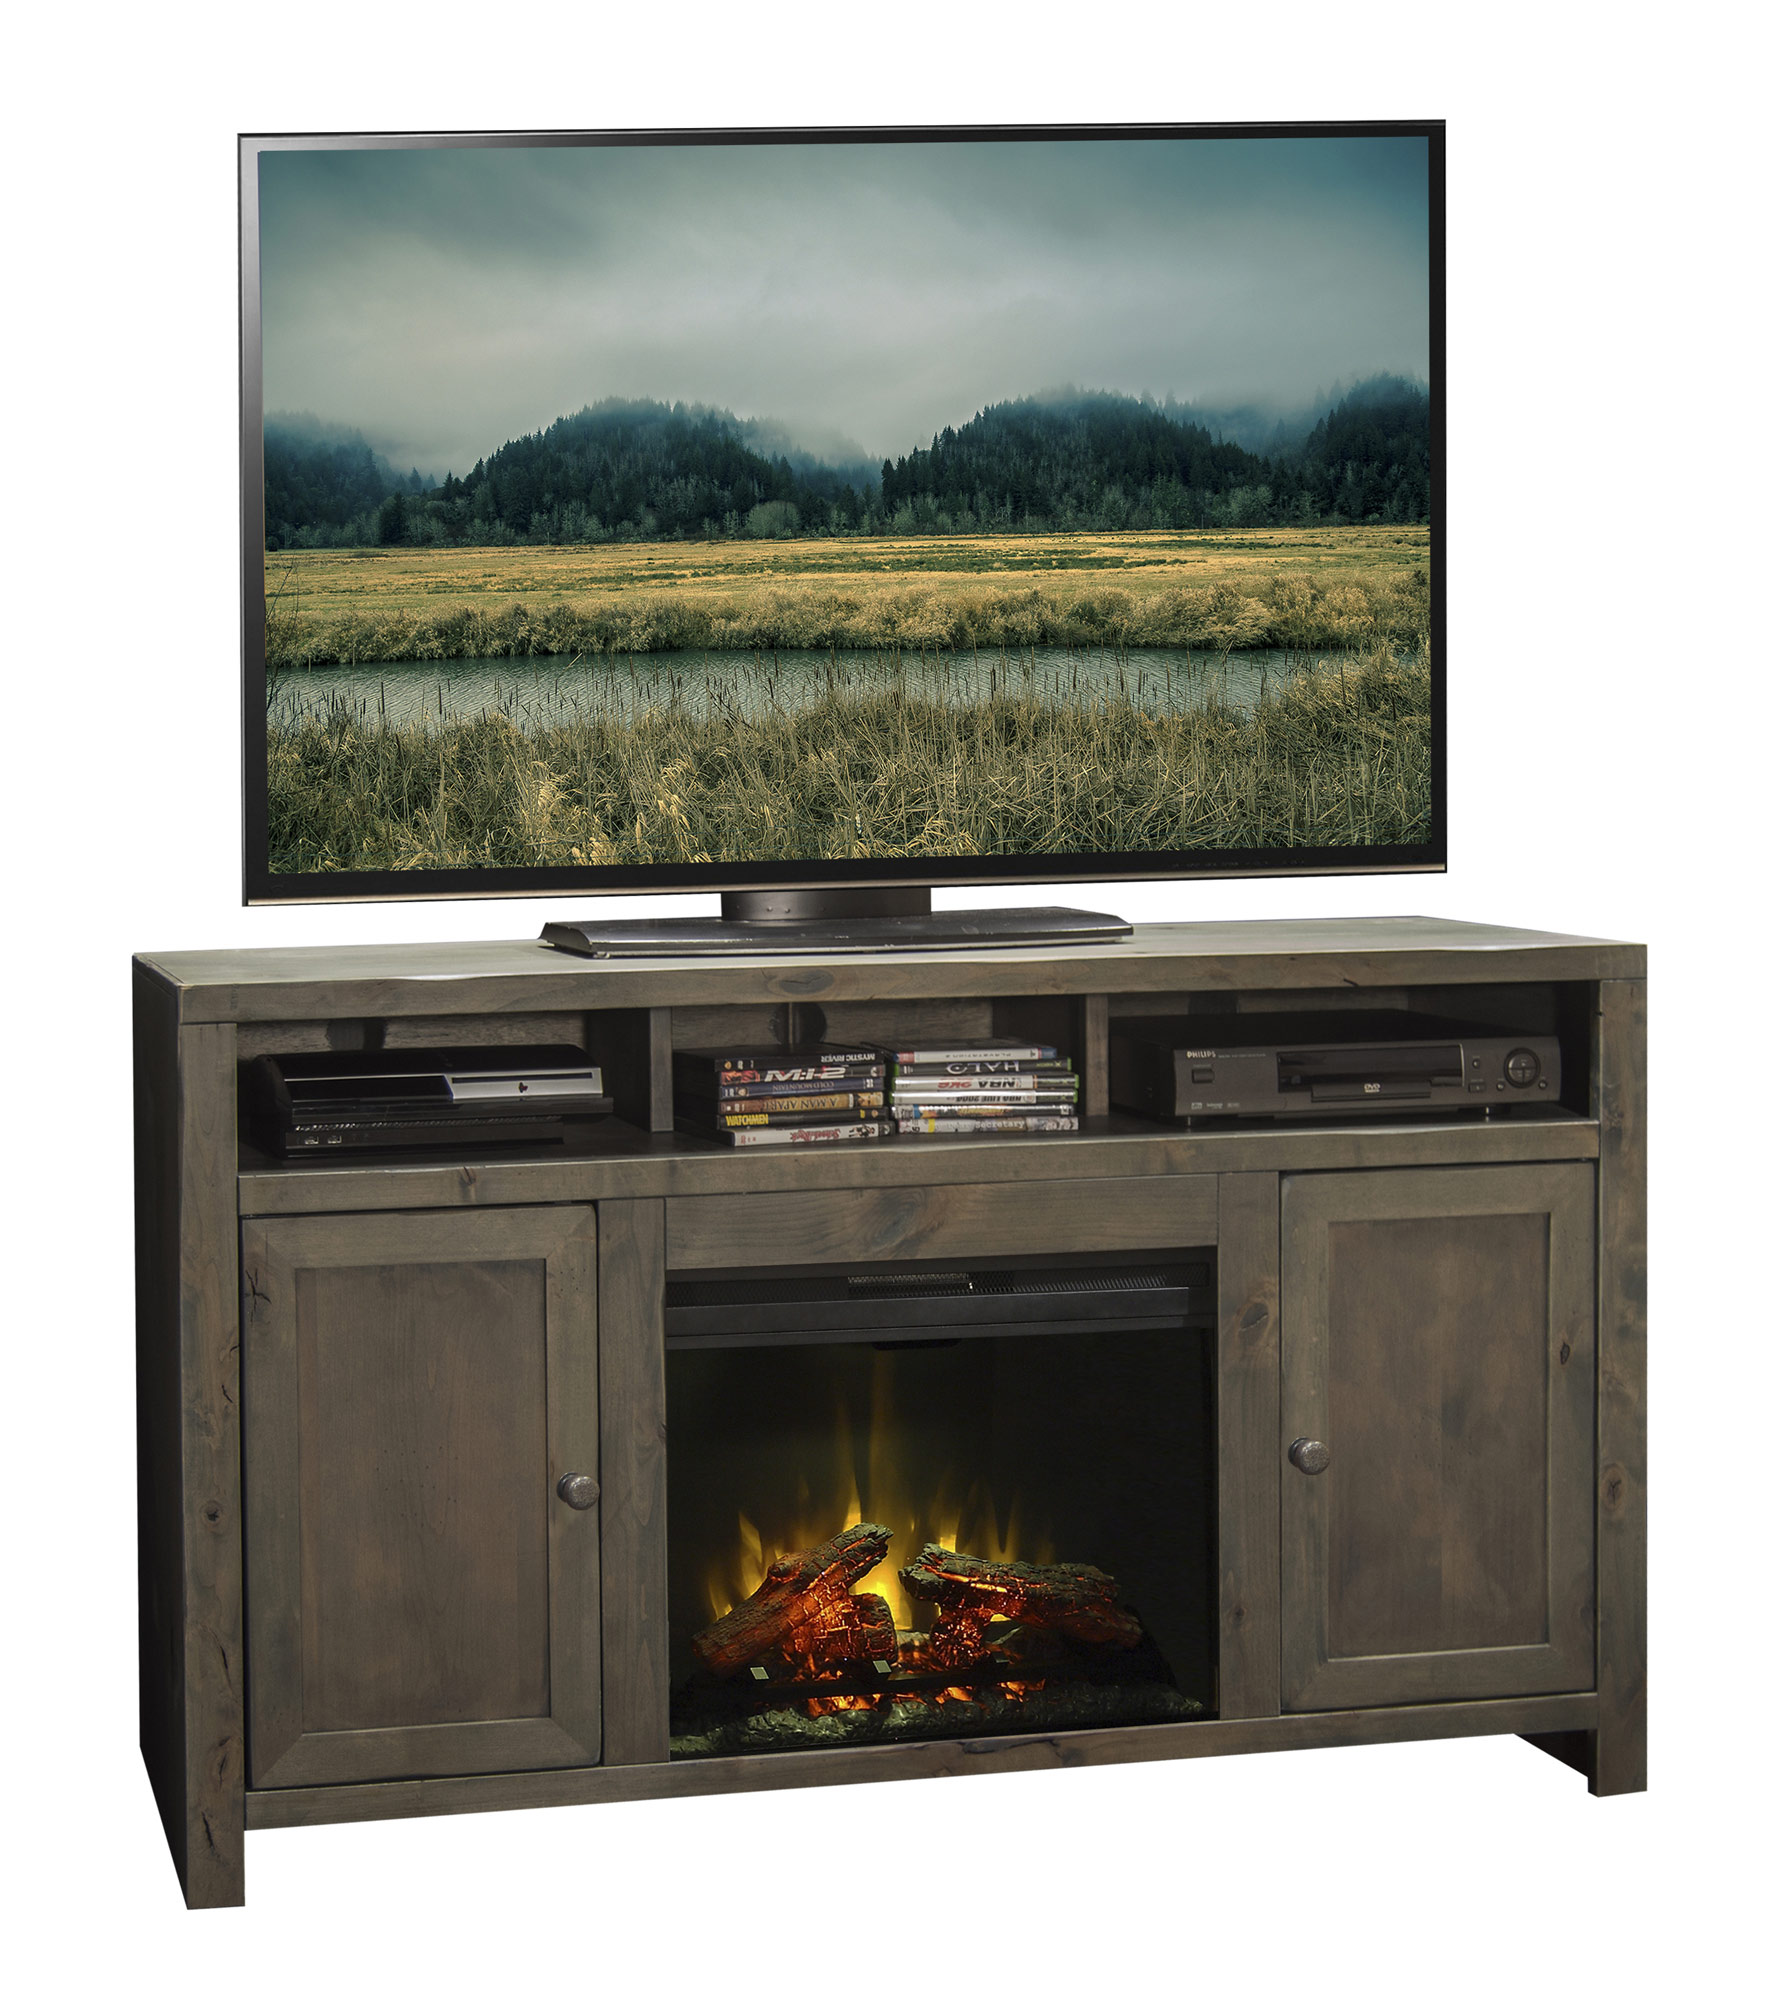 Montgomery 26in electric fireplace and tv stand cherry 26mm2490 c233 - Fireplace Console Legends Home Gallery Stores